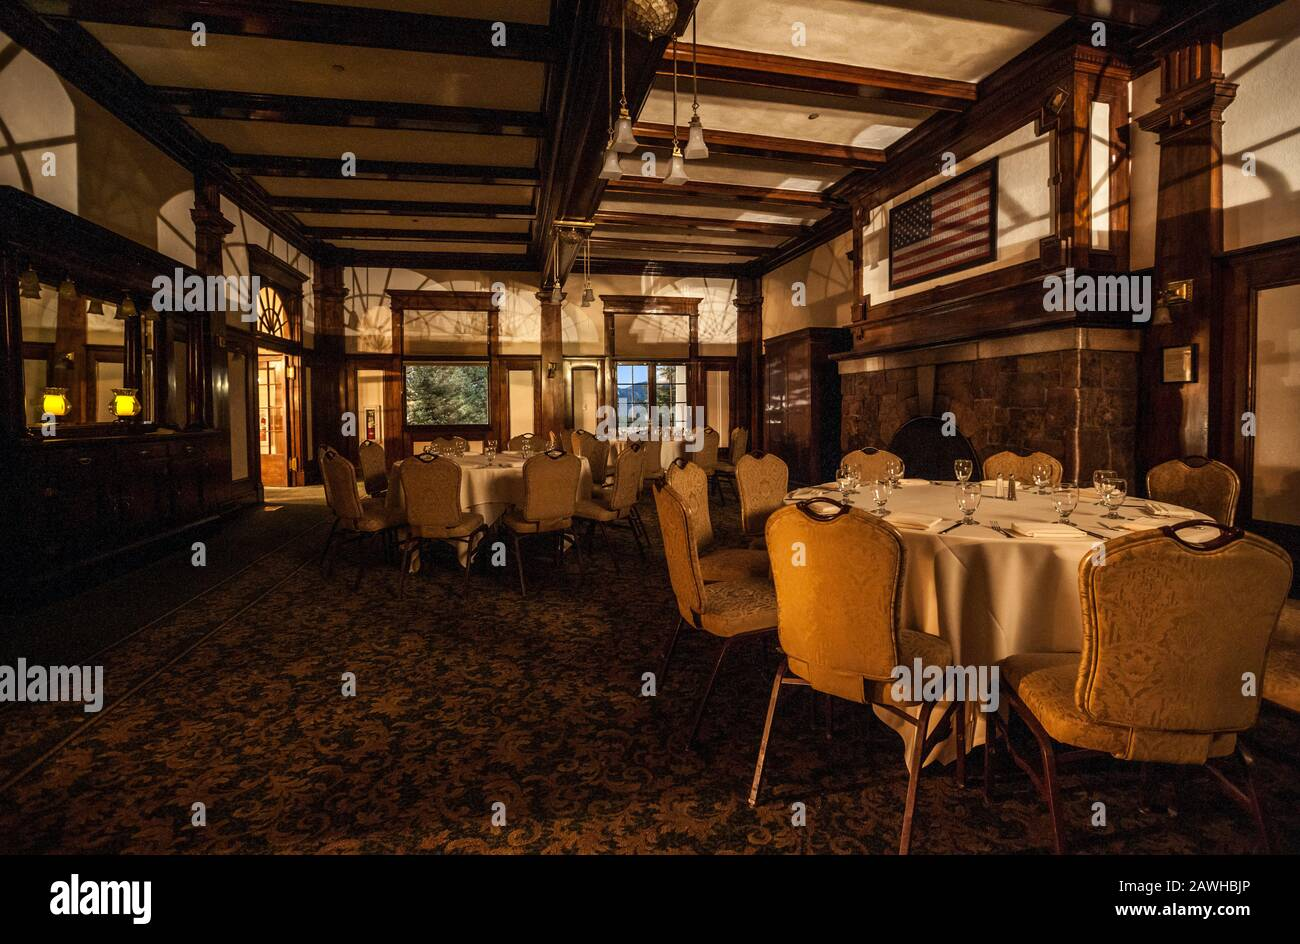 Haunted Room High Resolution Stock Photography And Images Alamy